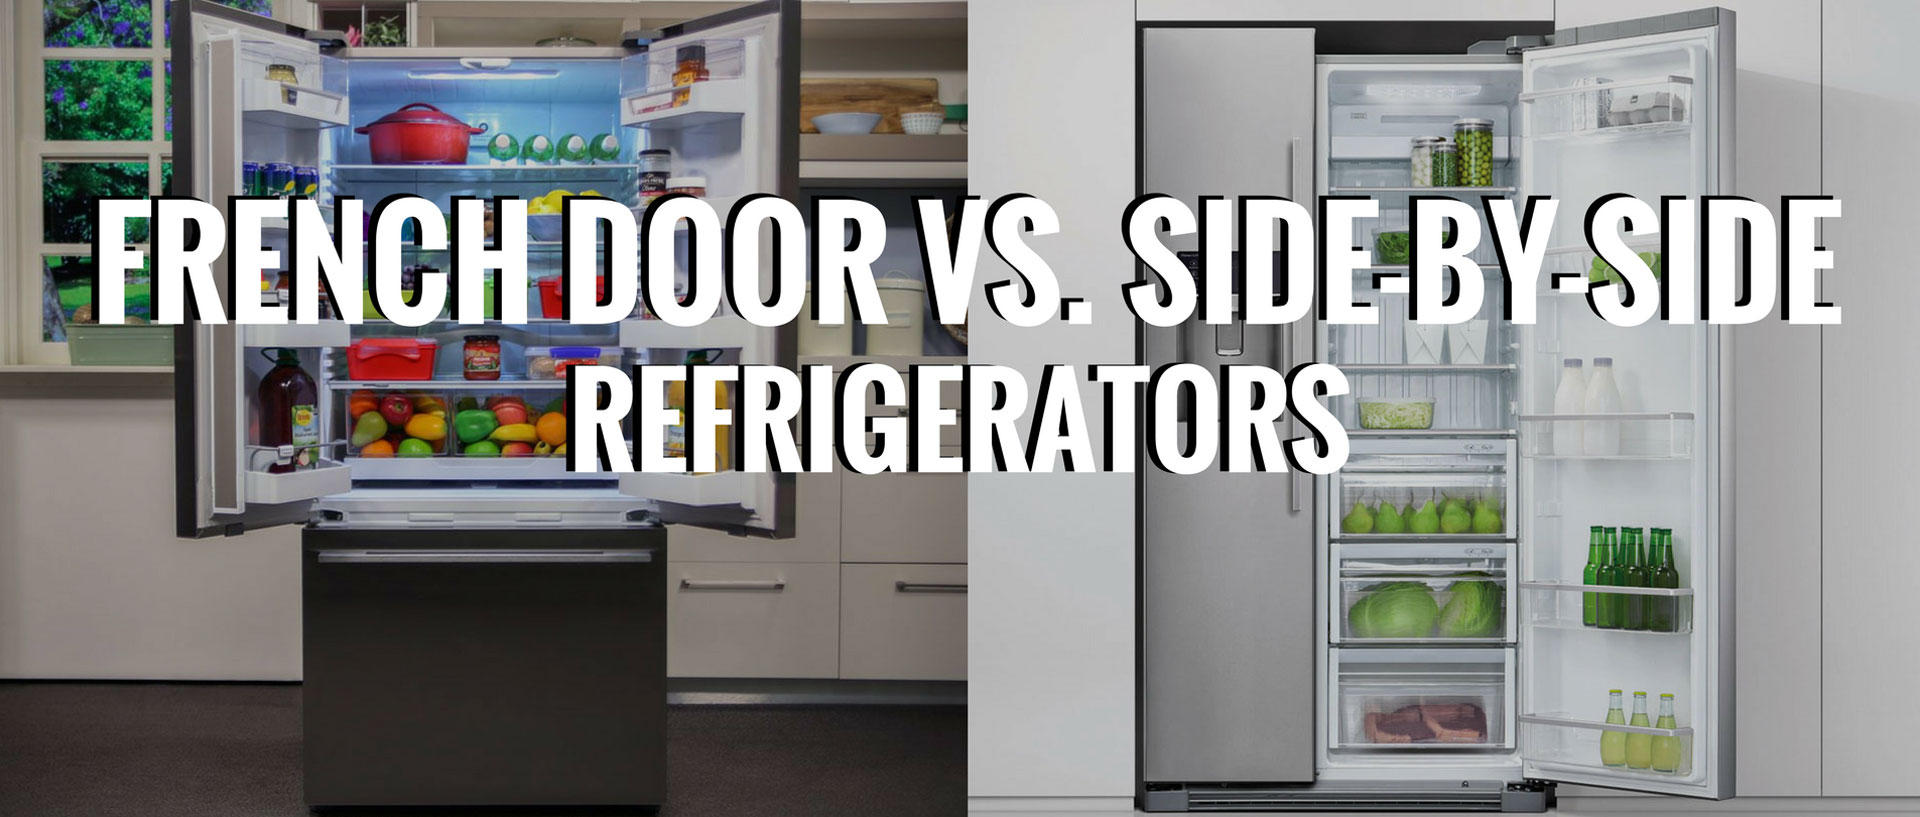 French Door Vs. Side-By-Side Refrigerators | Appliances Connection on house plans with soffits, house plans with master retreat, house plans with large pantries, house plans with large rooms, house plans with walk-in closets, house plans with 10 foot ceilings, house plans with pocket doors, house plans with arches, house plans with sunken living room, house plans with sweeping staircase, house plans with grand foyer, house plans with glass, house plans with brick exterior, house plans with wood ceilings, house plans with arched doors, house plans with maids quarters, house plans with sleeping porch, house plans with side porch, house plans with jack and jill bath, french bathroom doors,